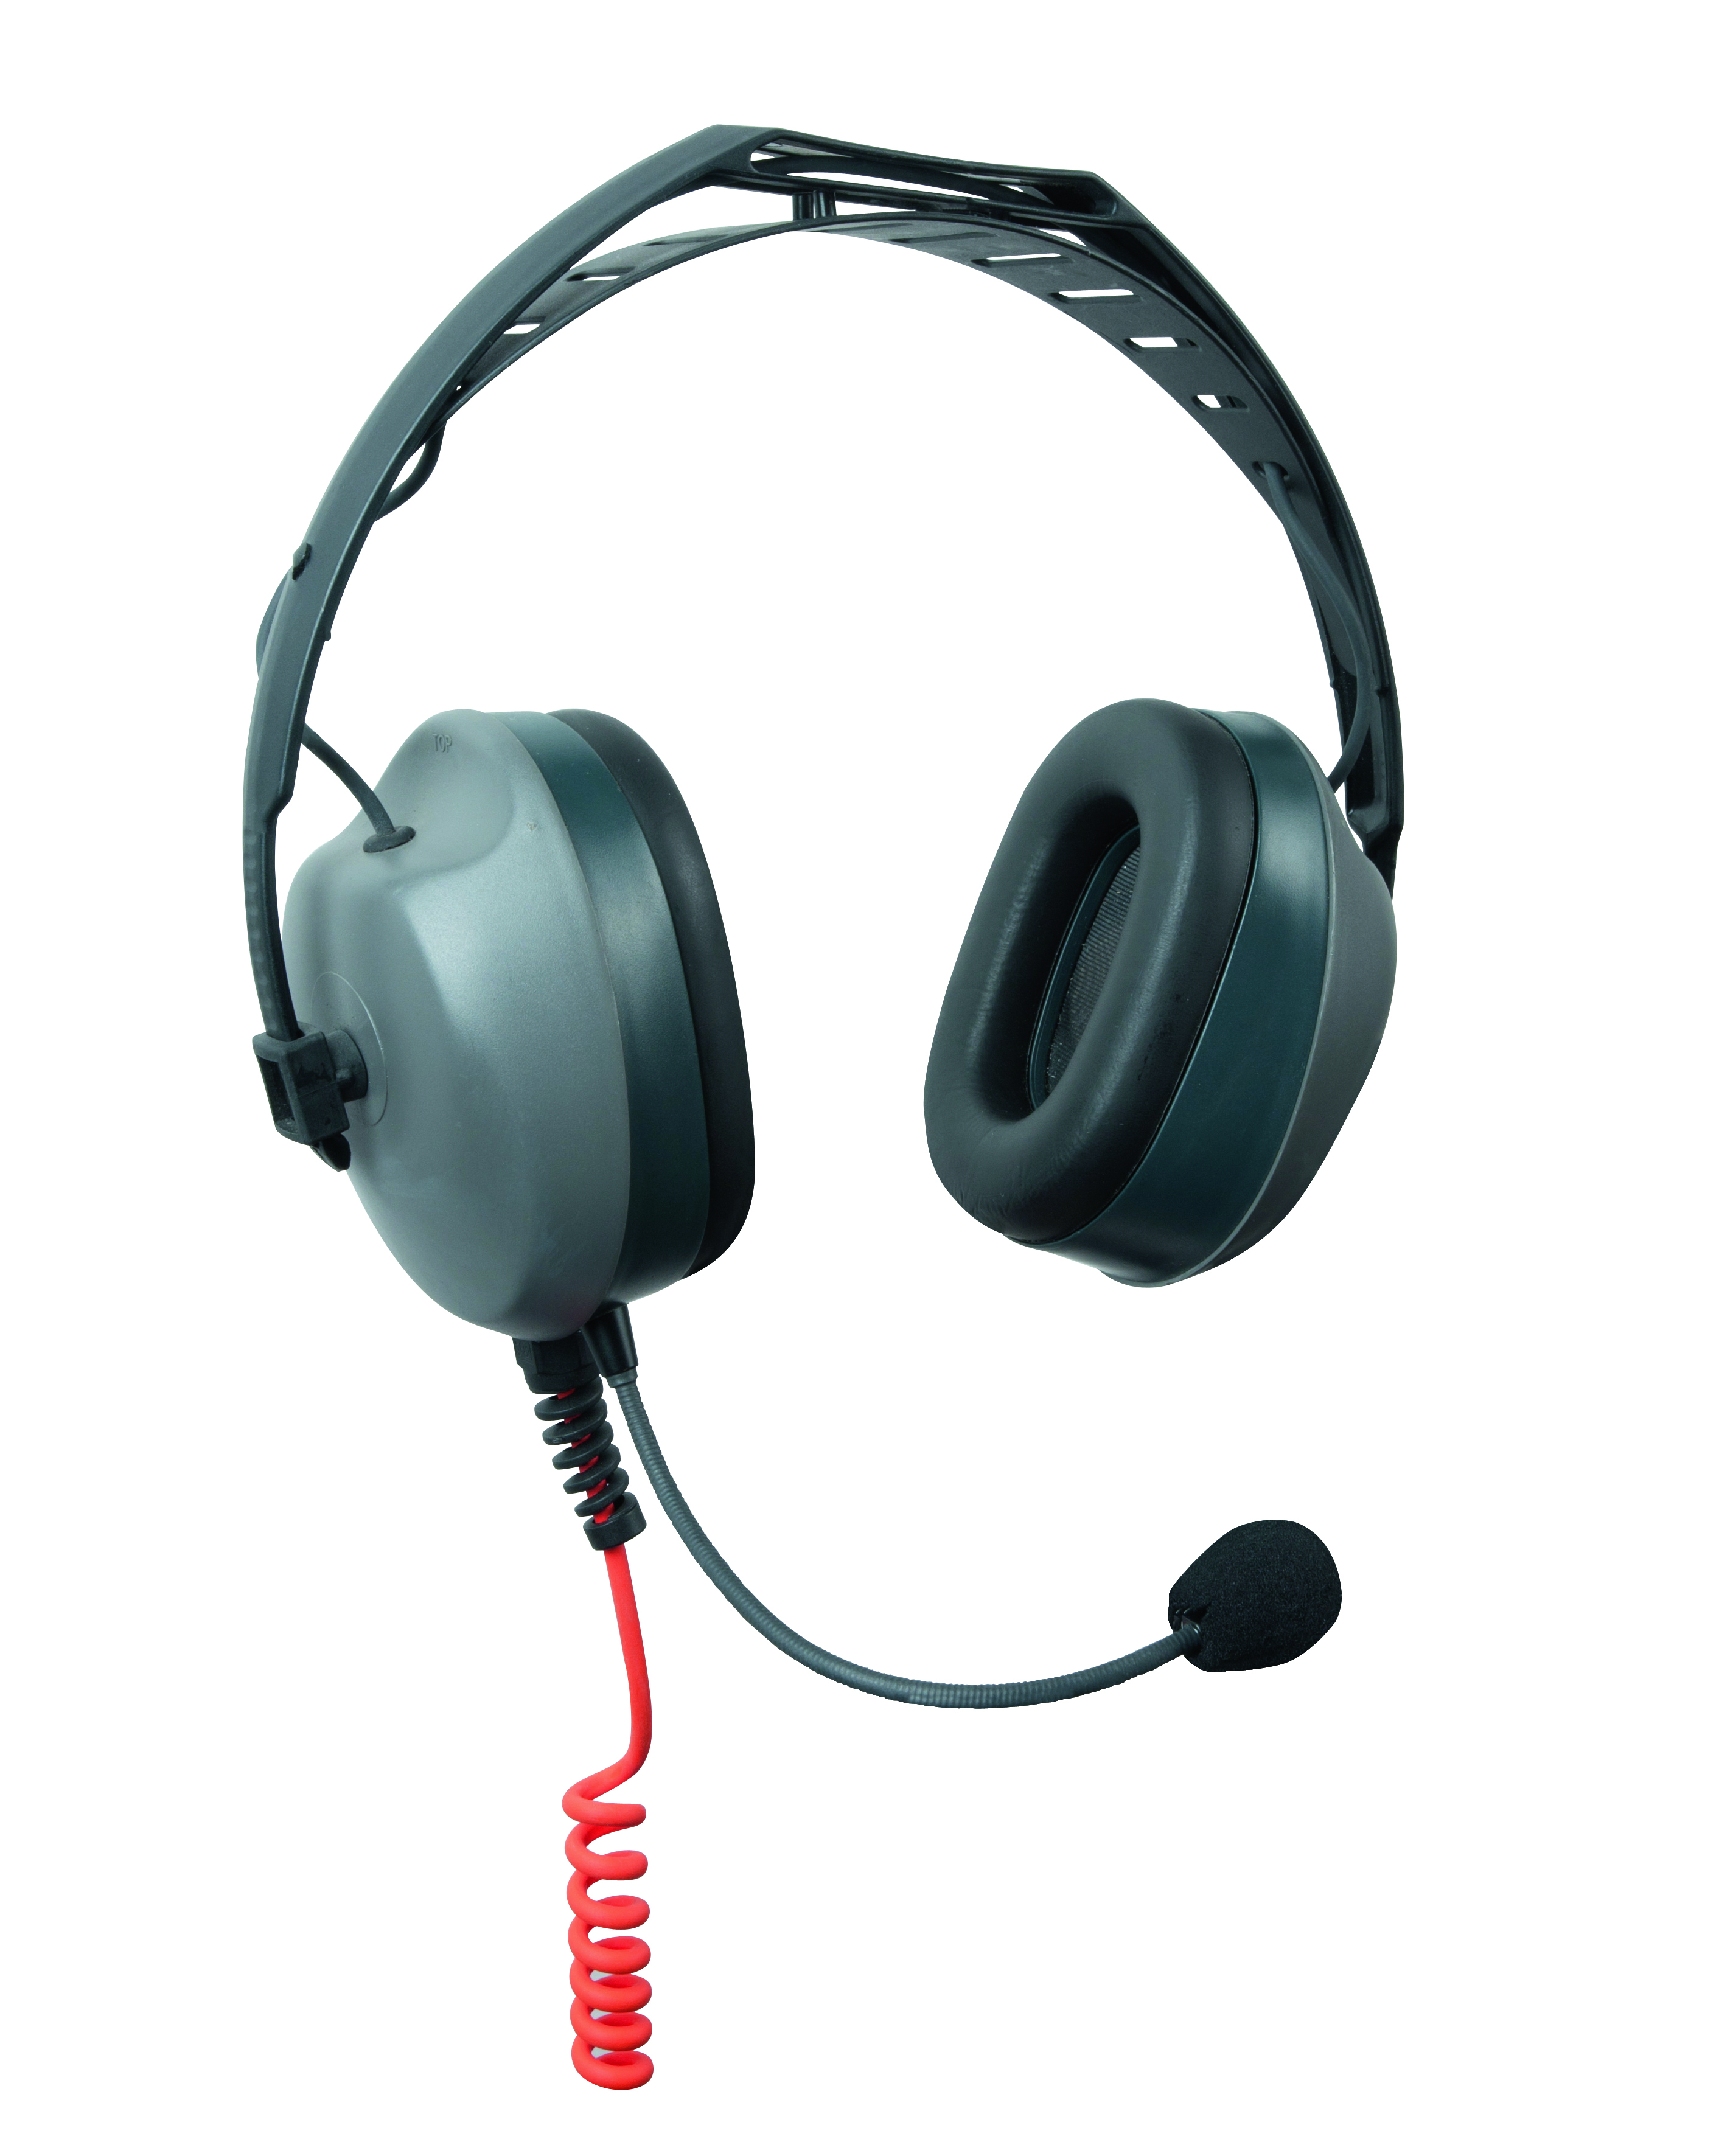 CASQUE DE COMMUNICATION ANTIBRUIT LEMCOM 300